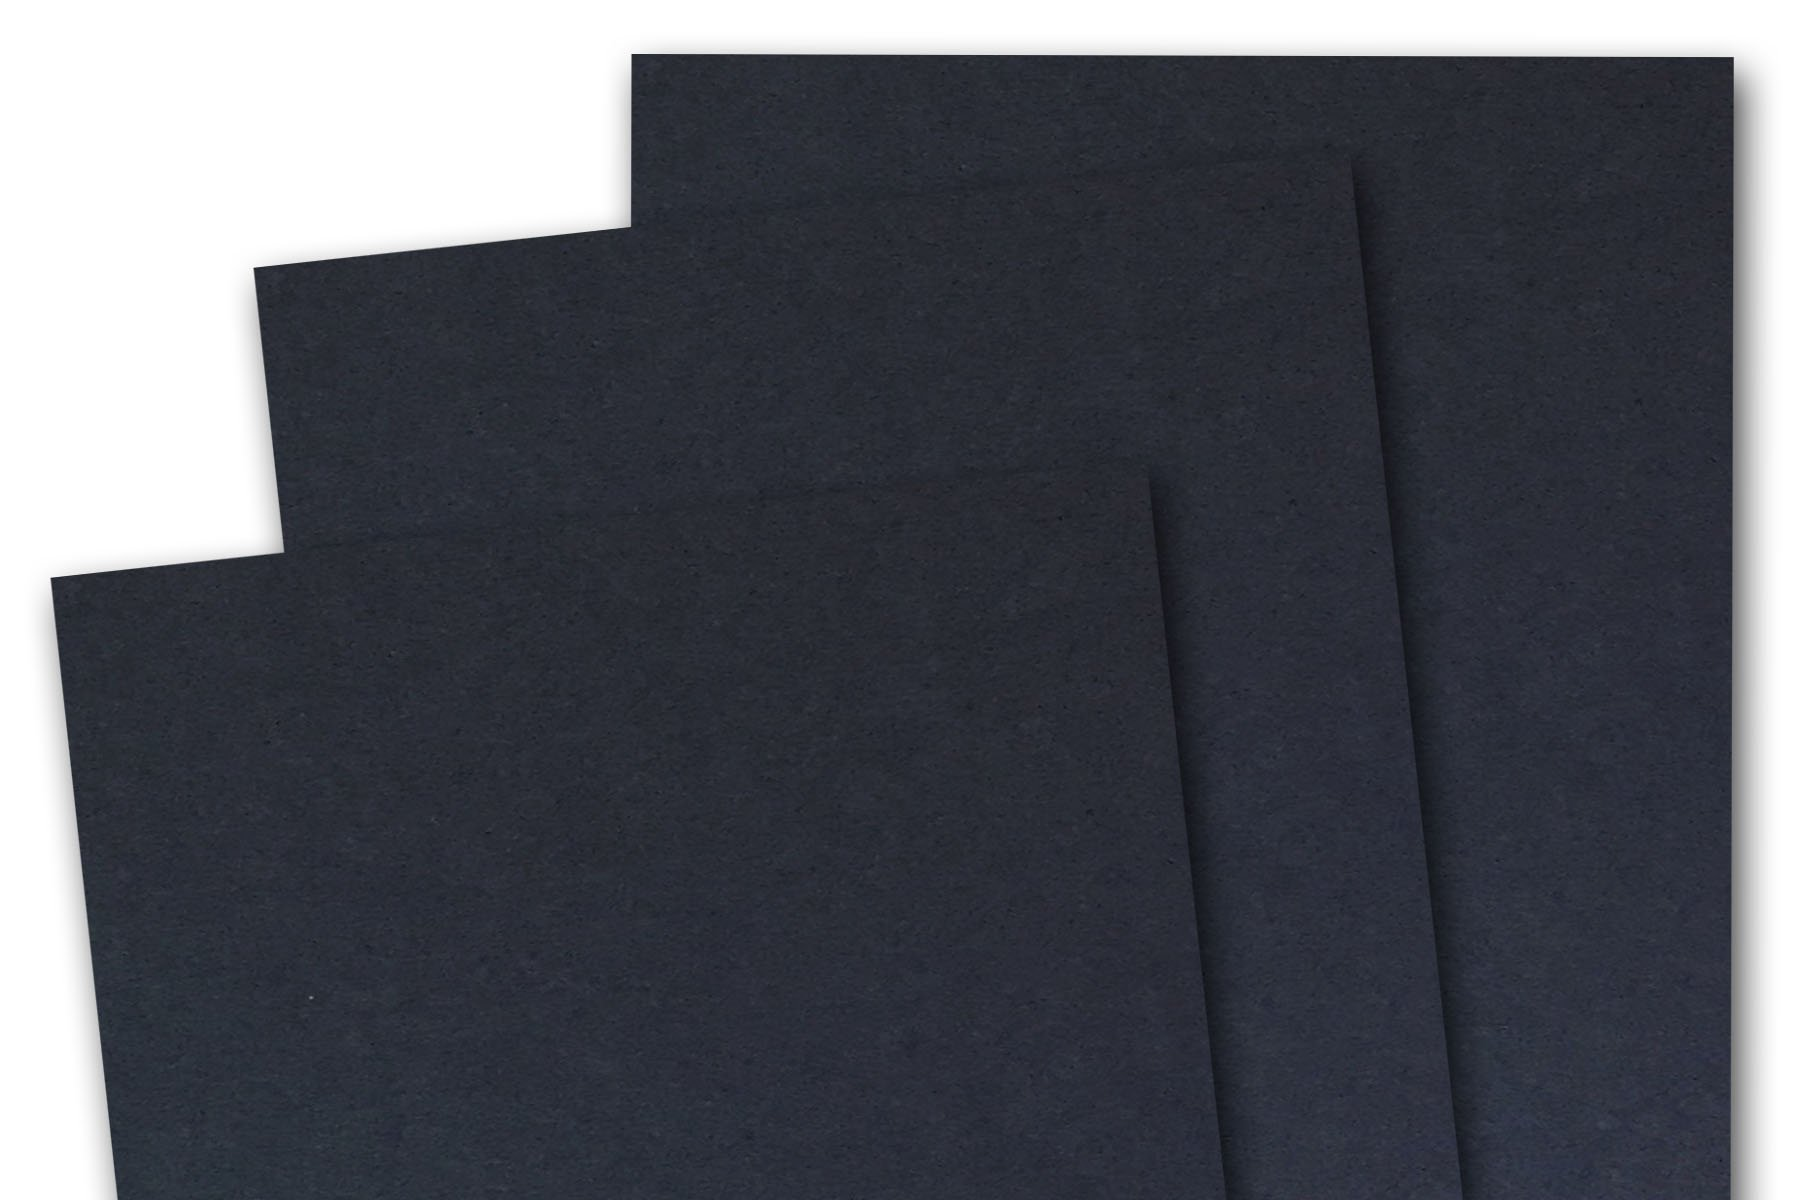 Blank Basic 8 1/2'' x 5 1/2'' inch Half Letter Matte 80# Cover Card Stock (50 Pack, Black)